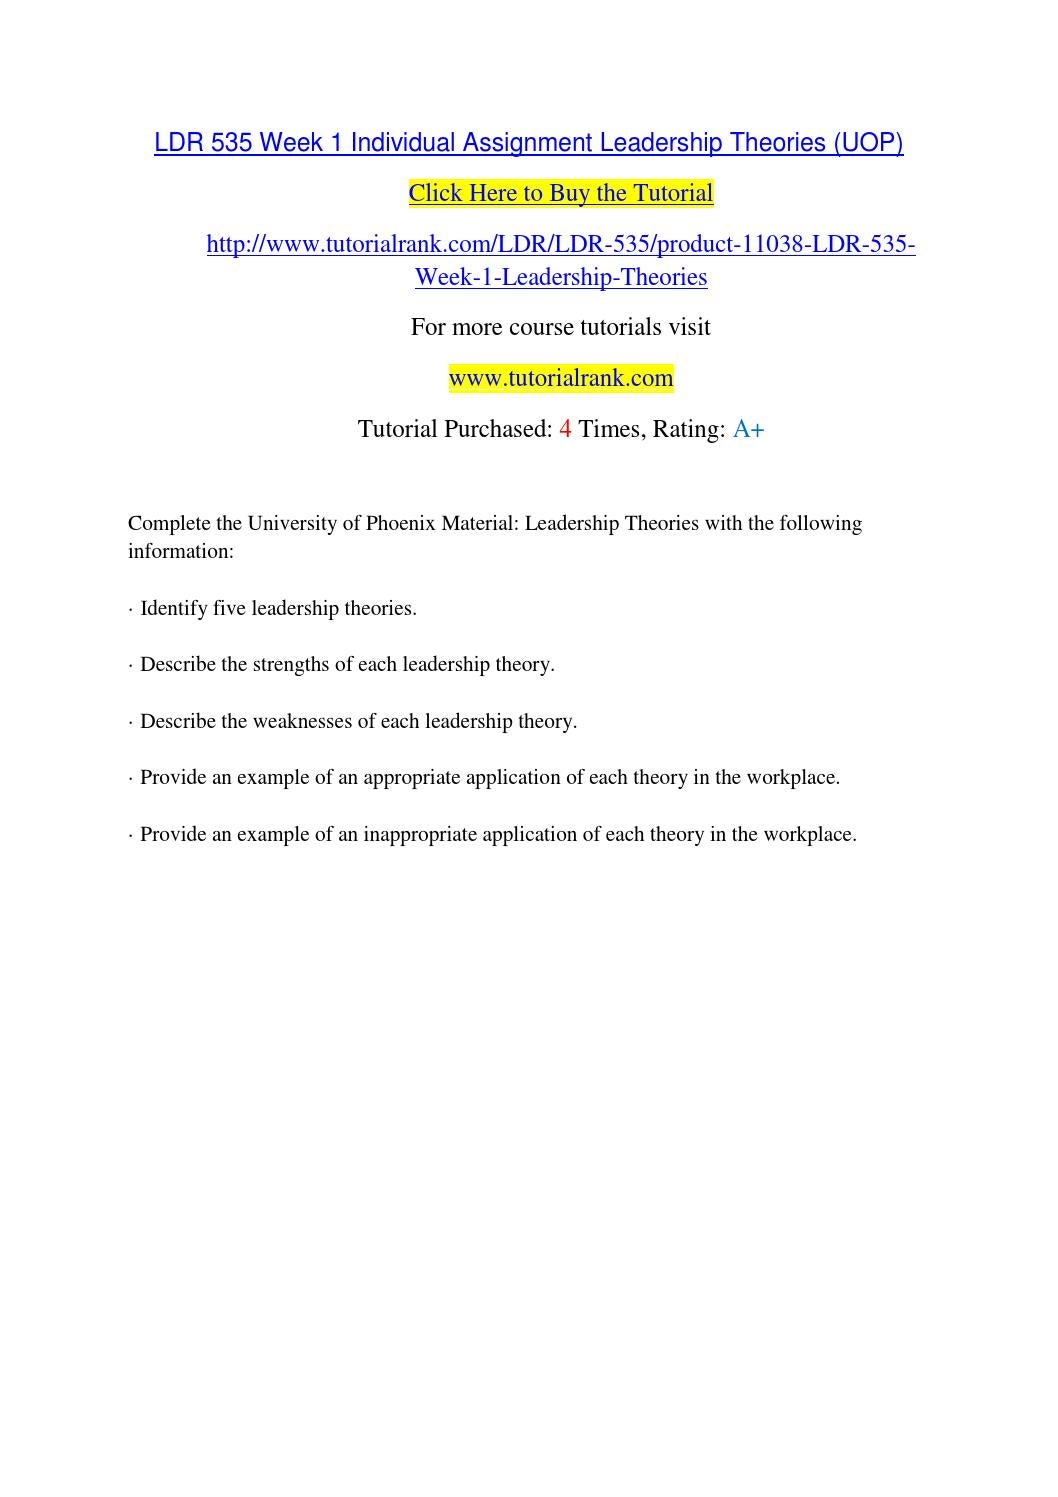 Ldr 535 week 1 individual assignment leadership theories (uop) by ...